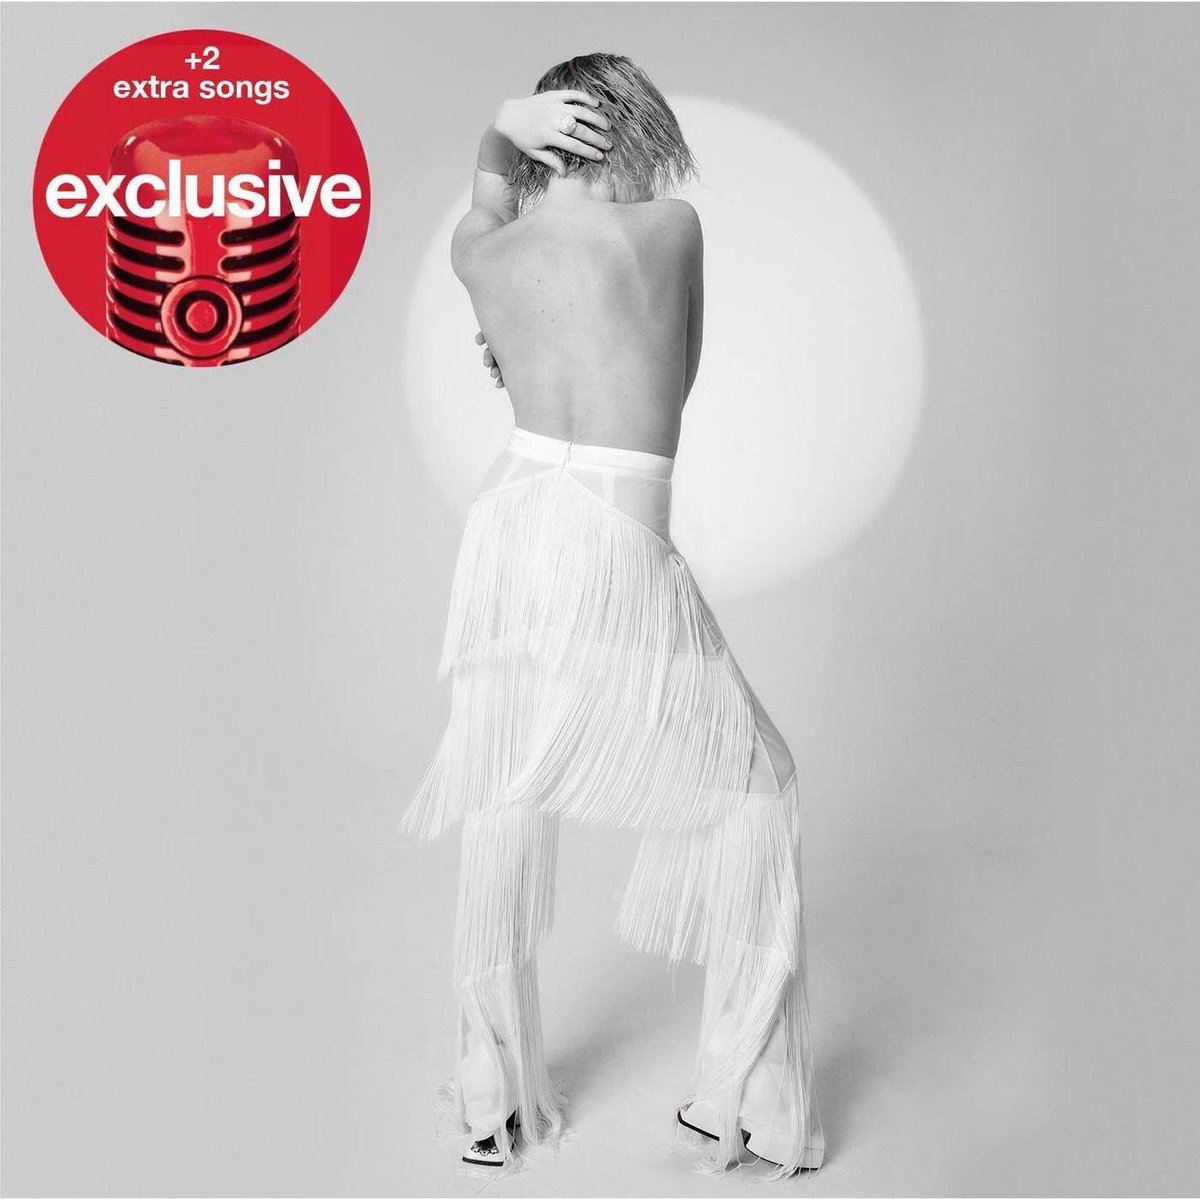 #Dedicated with 2 extra tracks is available now at @Target https://carlyraejepsen.lnk.to/DedicatedDL/target…